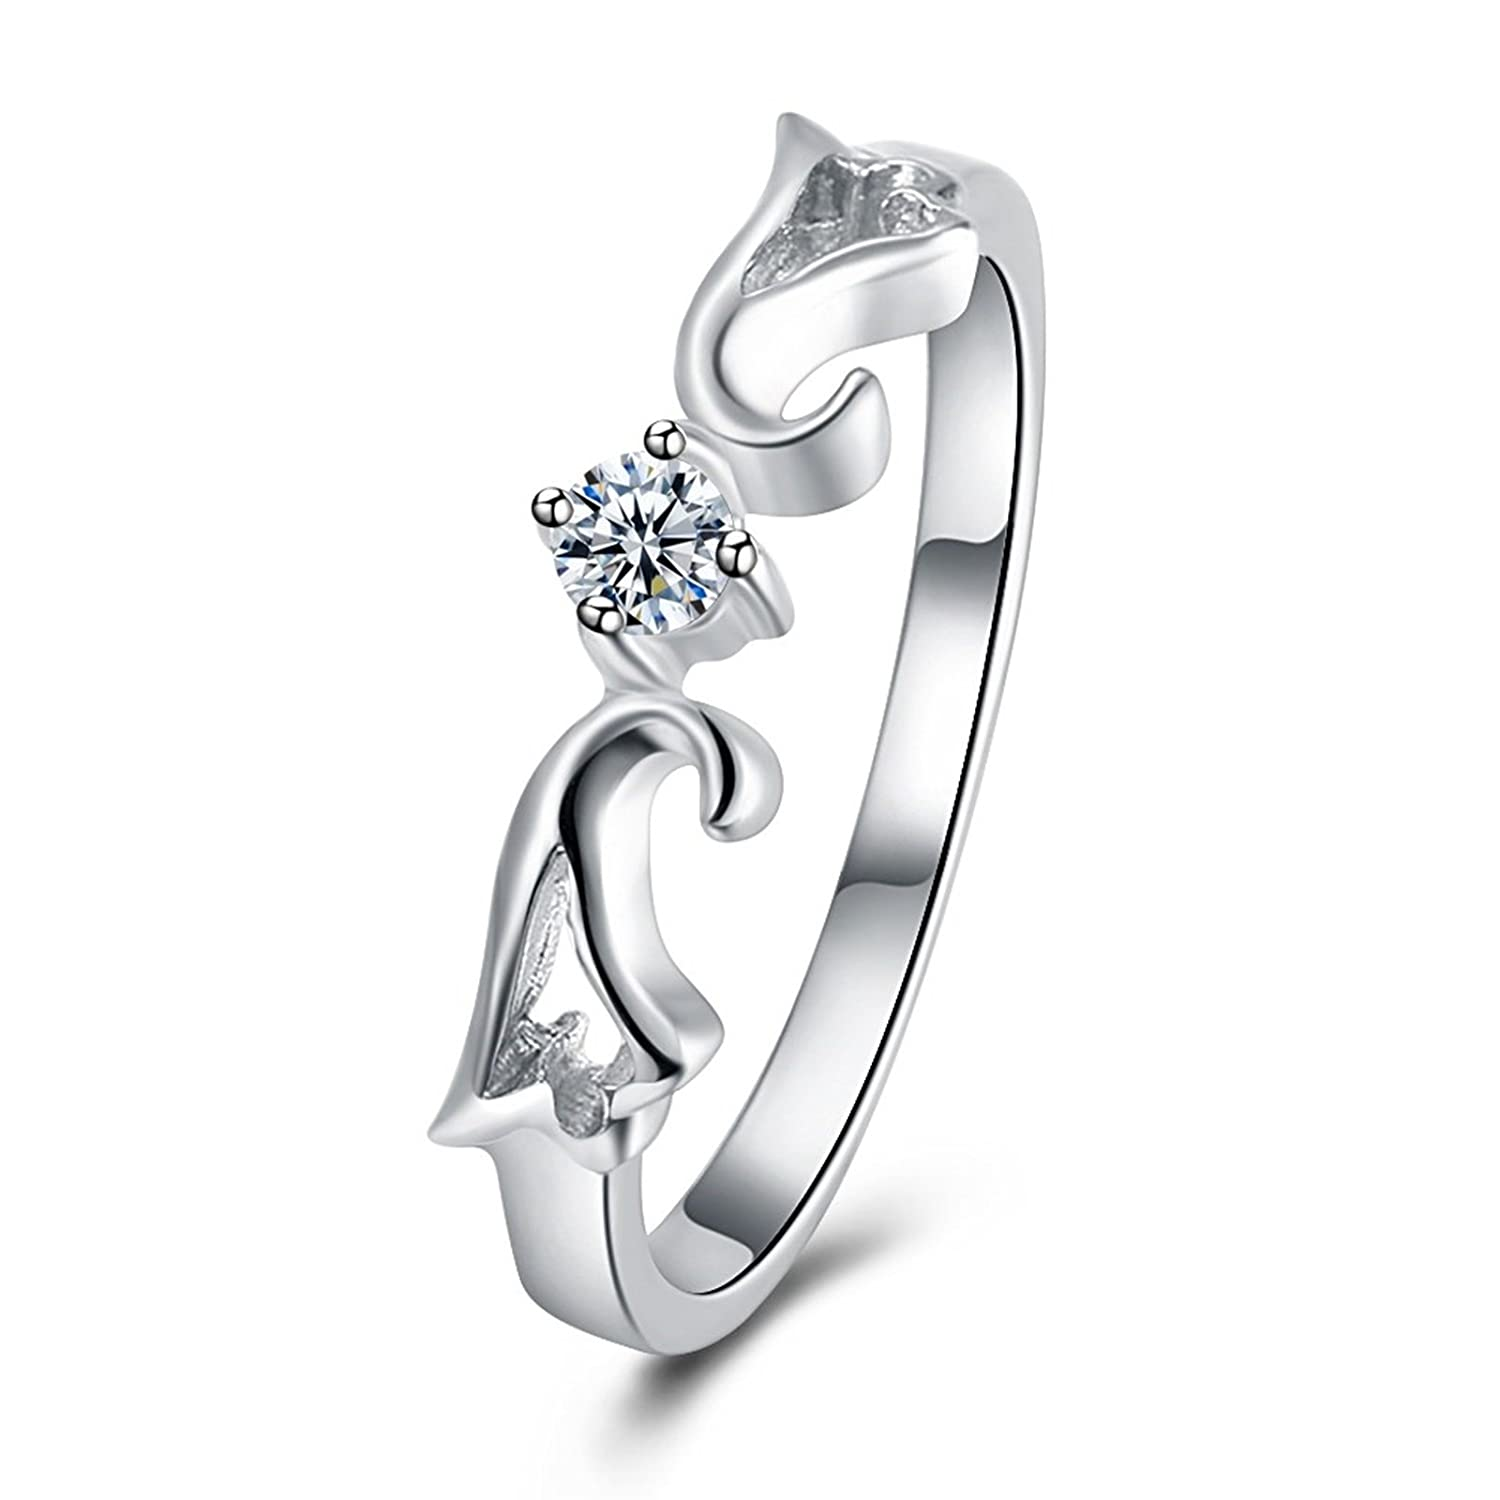 MoAndy Silver Plated Ring for Women Crystal Cubic Zirconia Flower White Wedding Band